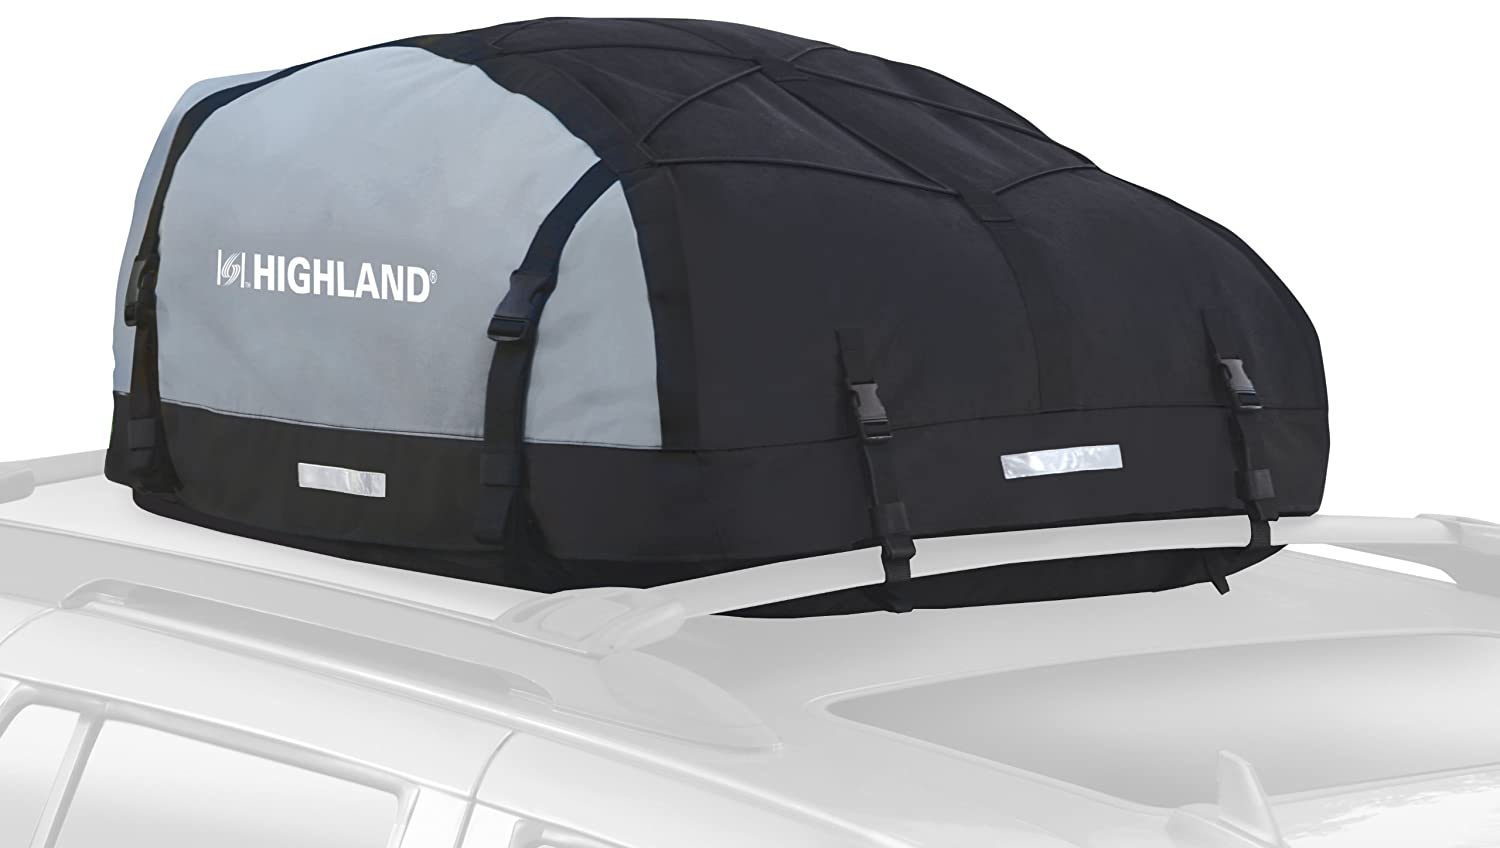 Amazon.com Highland 1039800 Black/Gray 10-15 cu.ft. Expandable Car Top Bag Automotive  sc 1 st  Amazon.com & Amazon.com: Highland 1039800 Black/Gray 10-15 cu.ft. Expandable Car ...